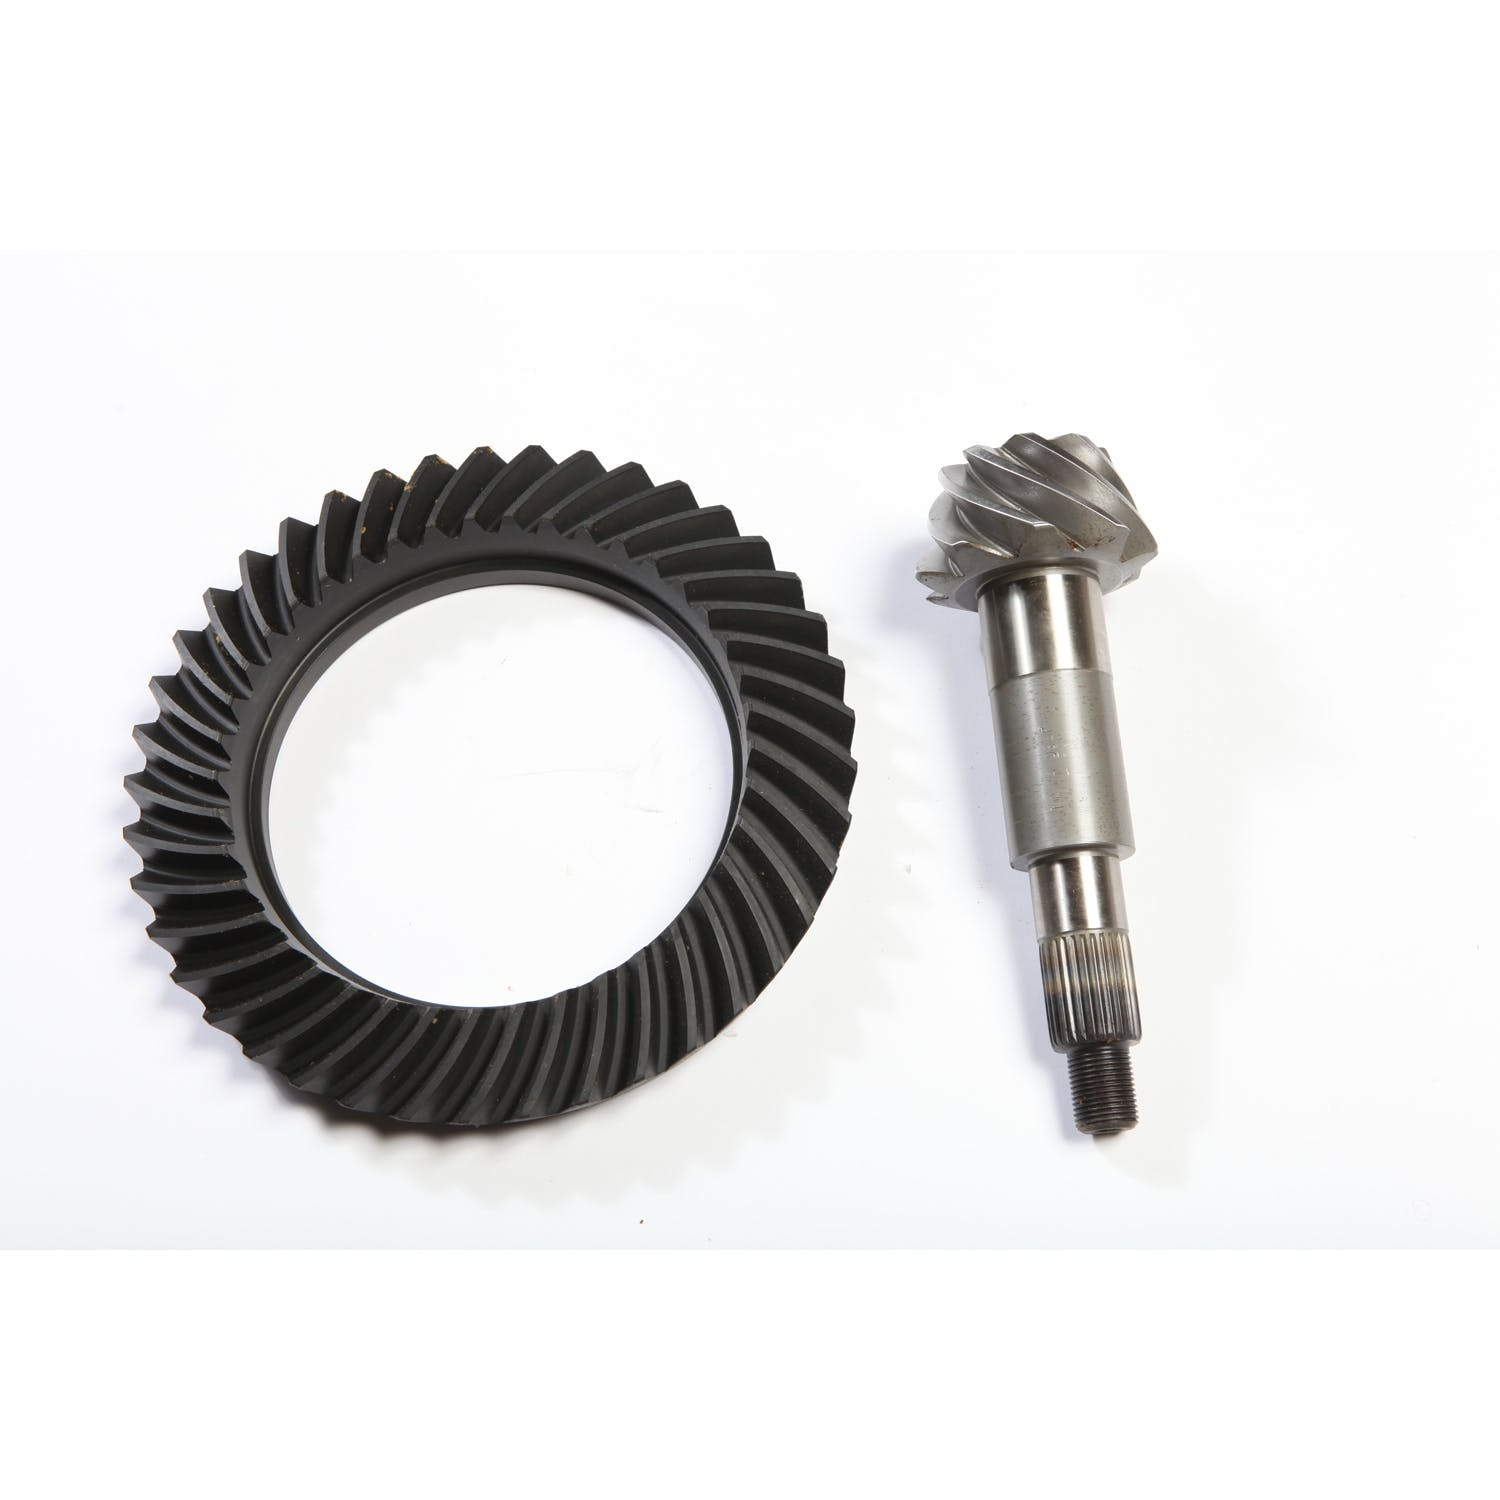 Precision Gear TOY456 8 200mm 4.56 Ratio Ring and Pinion